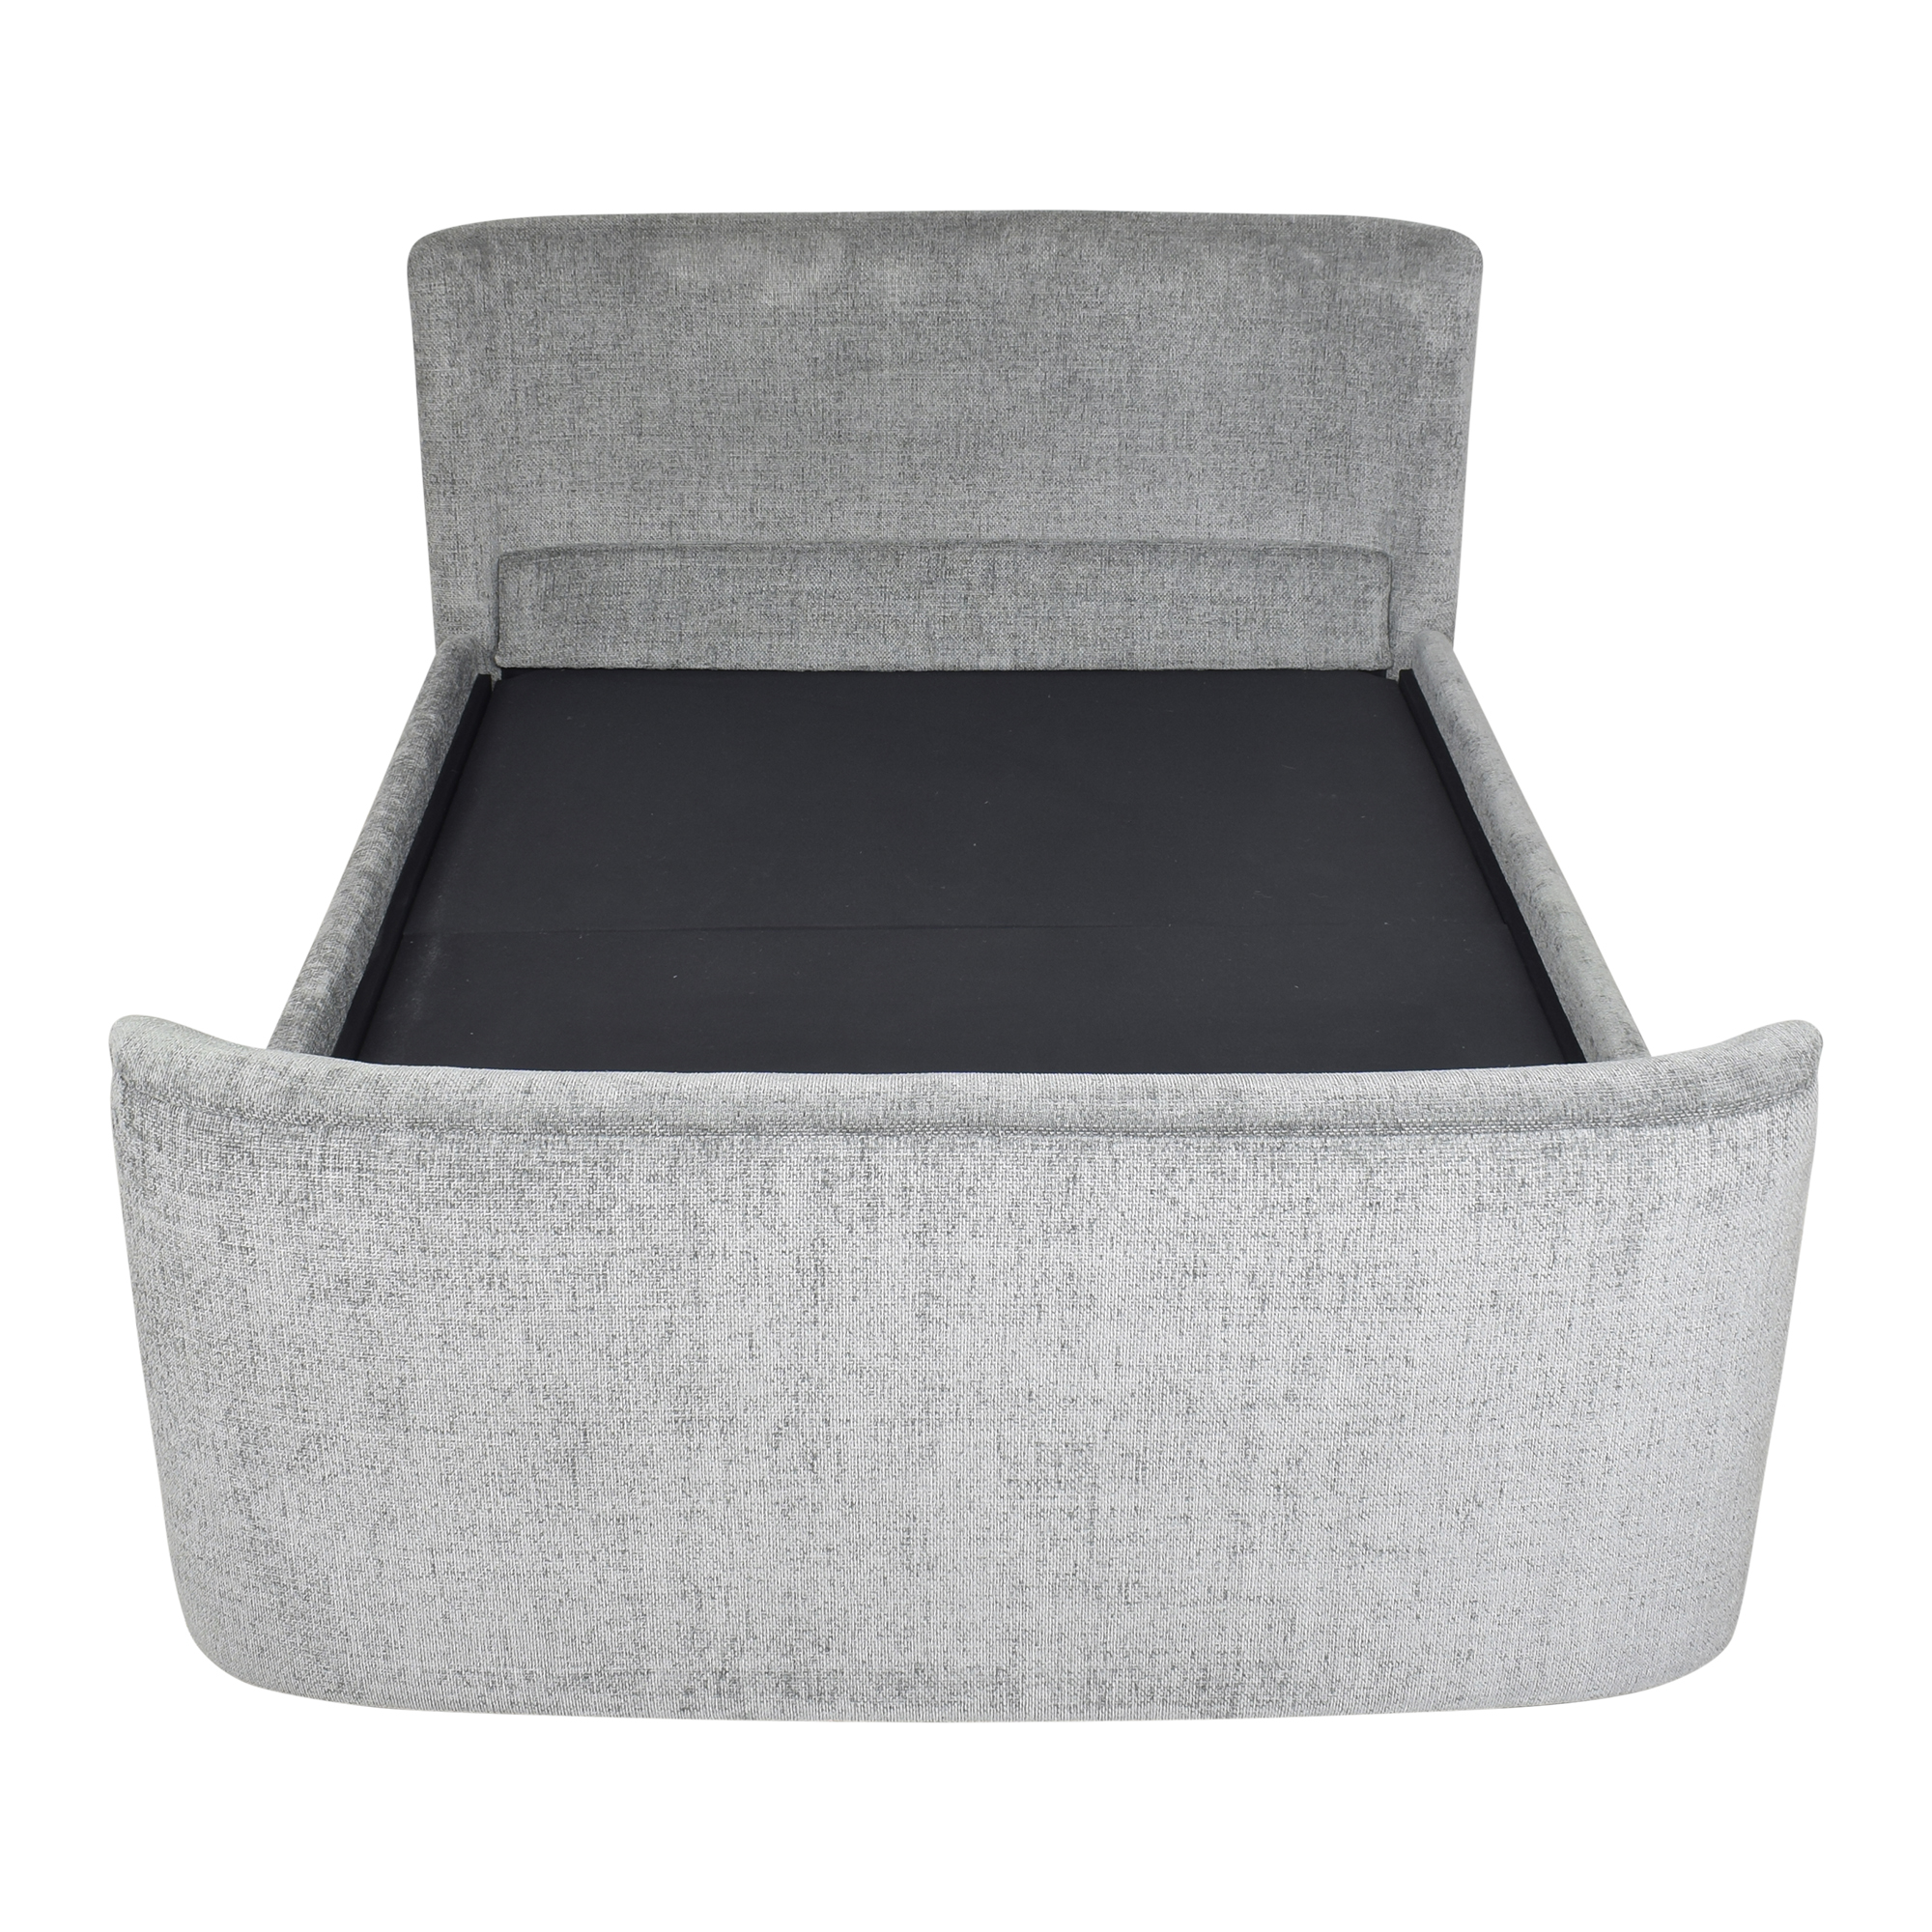 Upholstered Queen Bed for sale